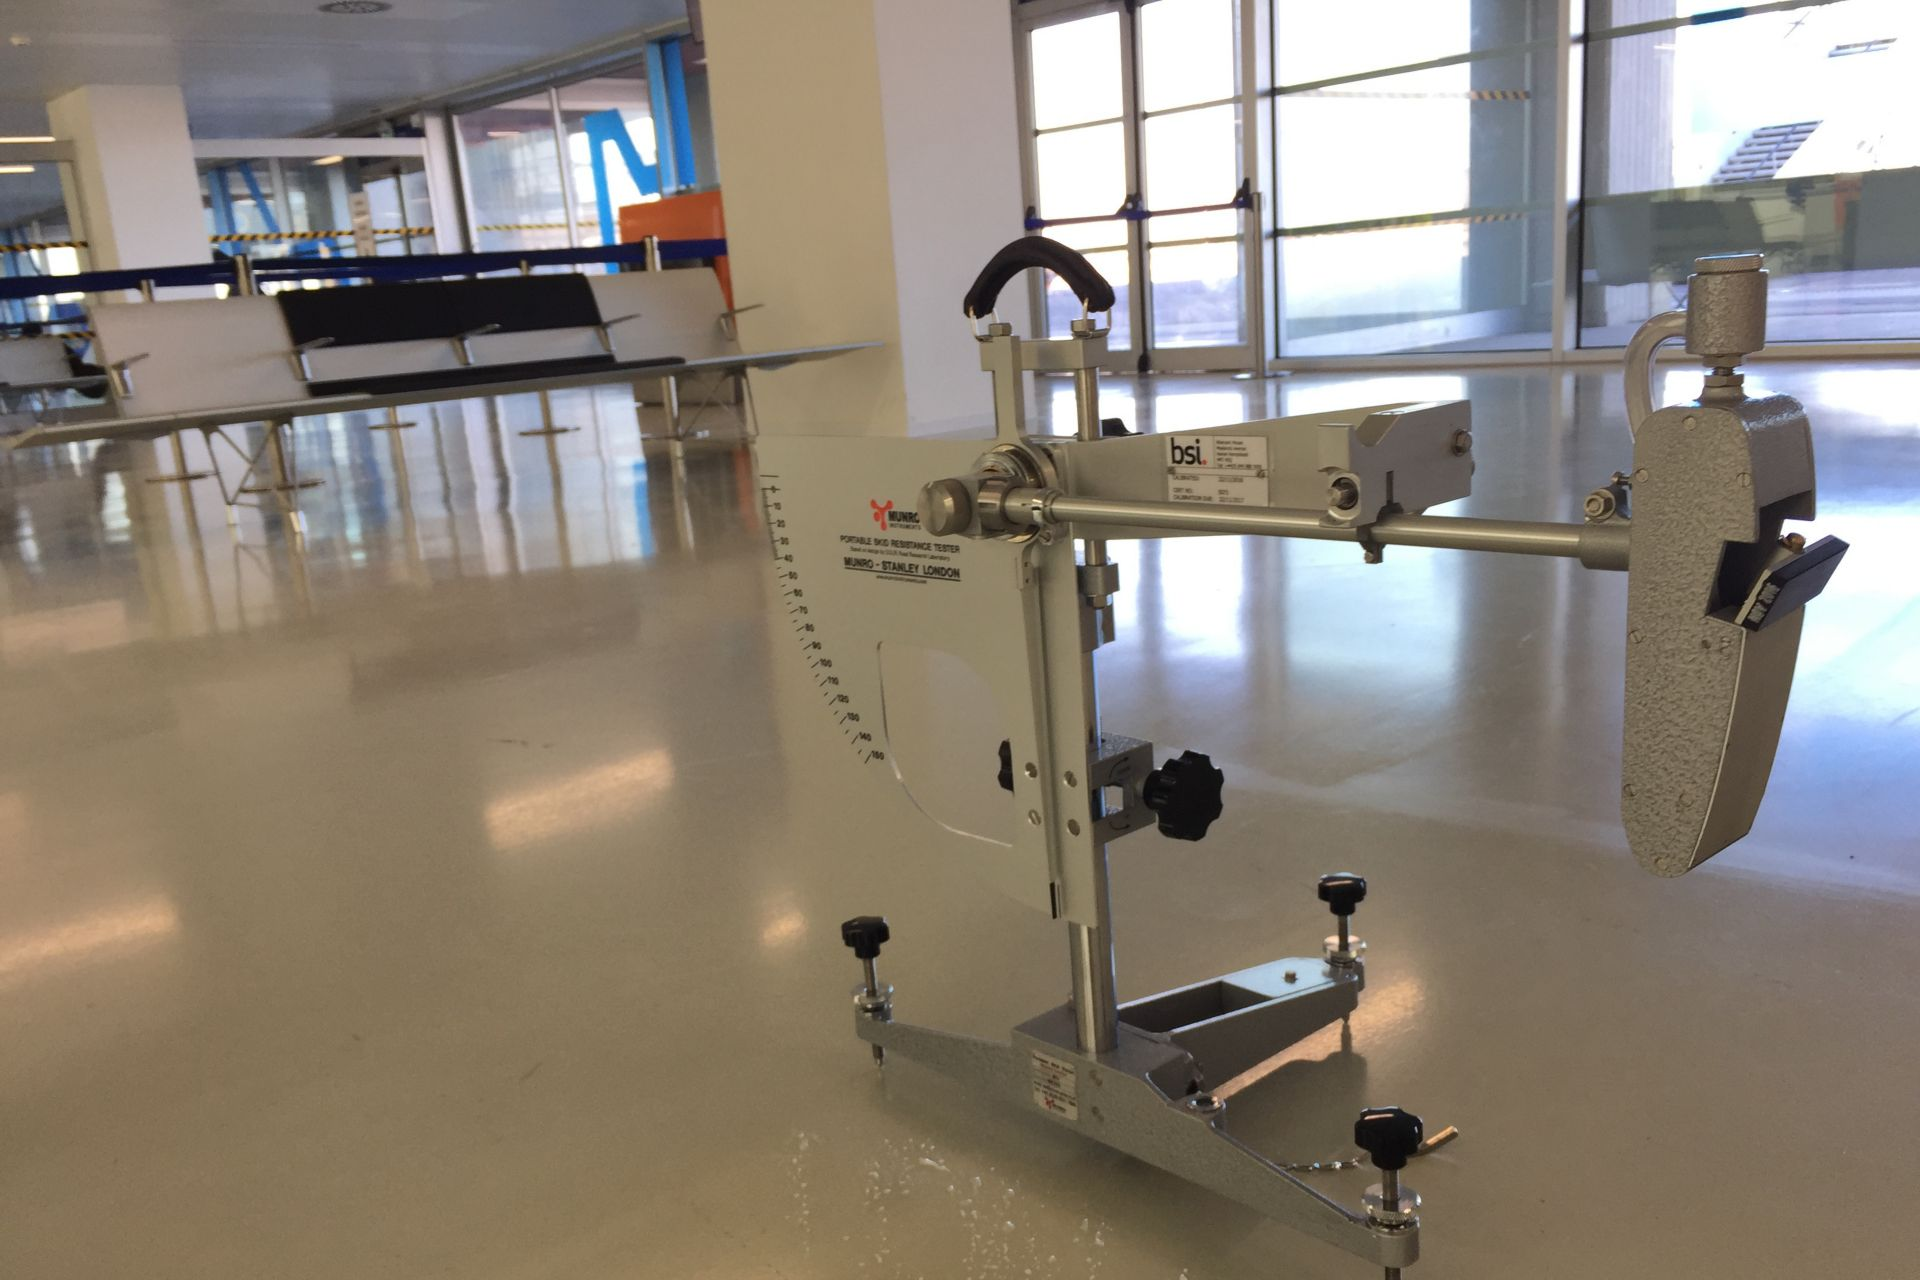 Flooring machine in use at the Trieste Airport